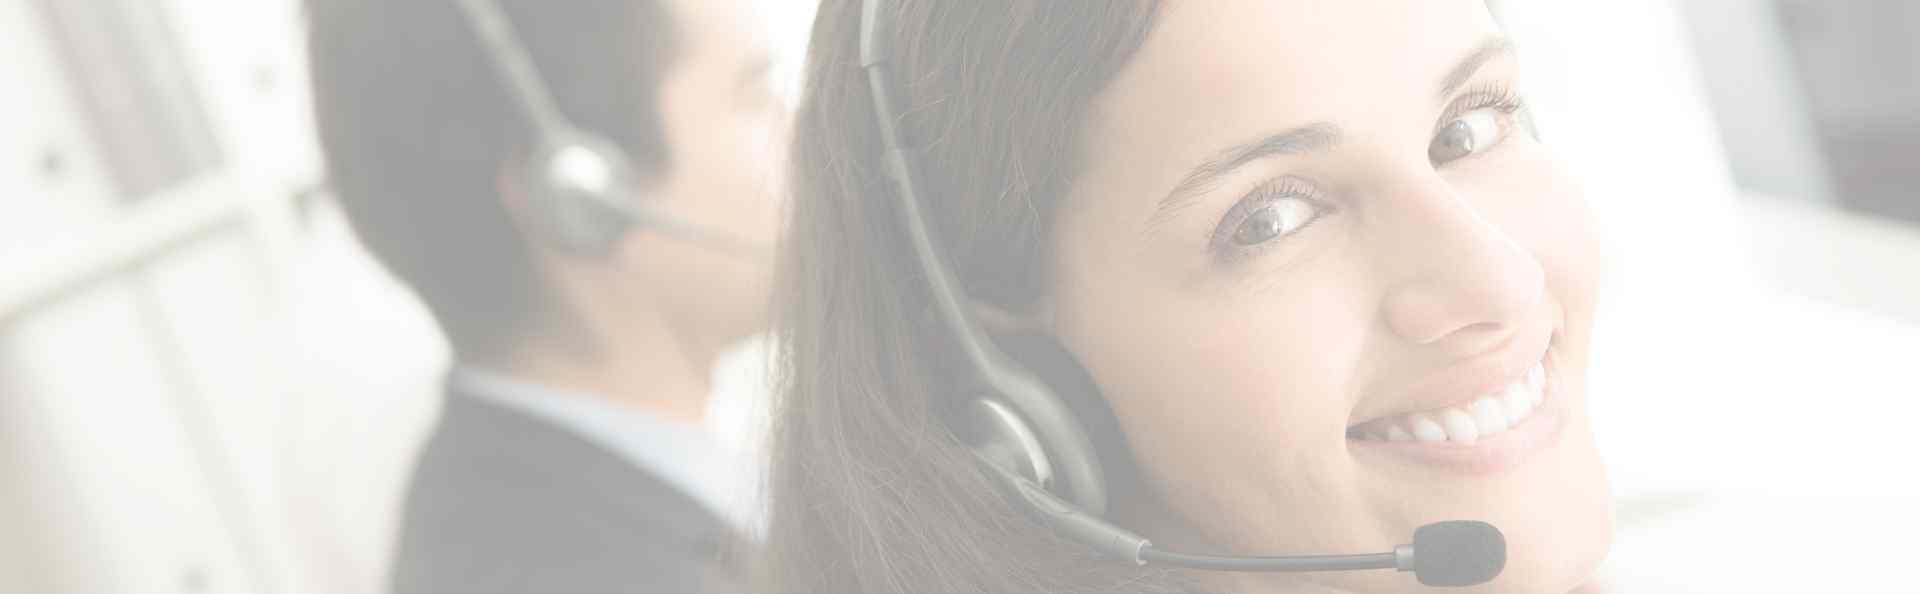 a happy customer services girl wearing headset responding to customers